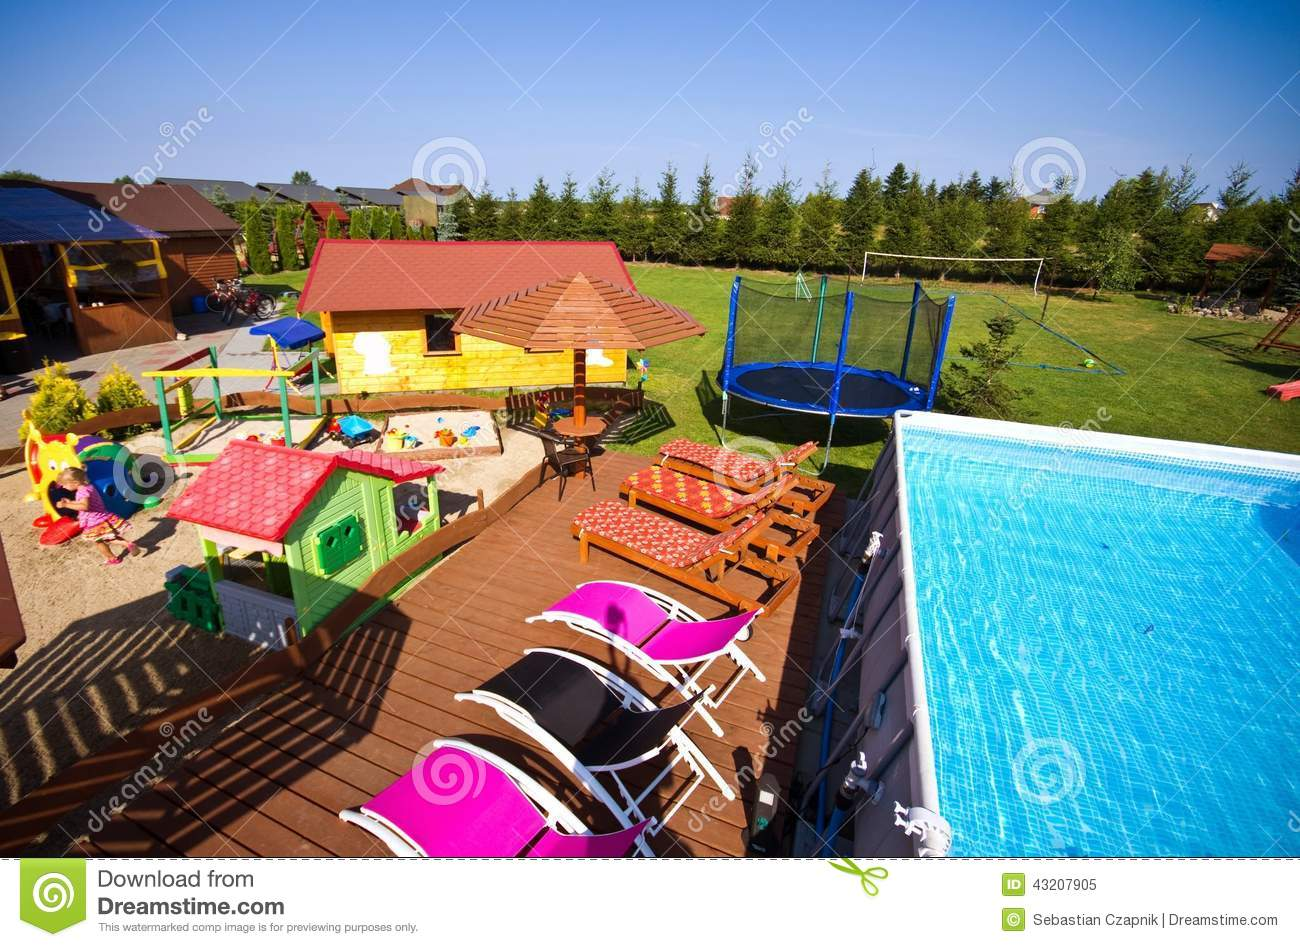 Huge Backyard Swimming Pool : colorful backyard with big swimming pool, children play area, deck